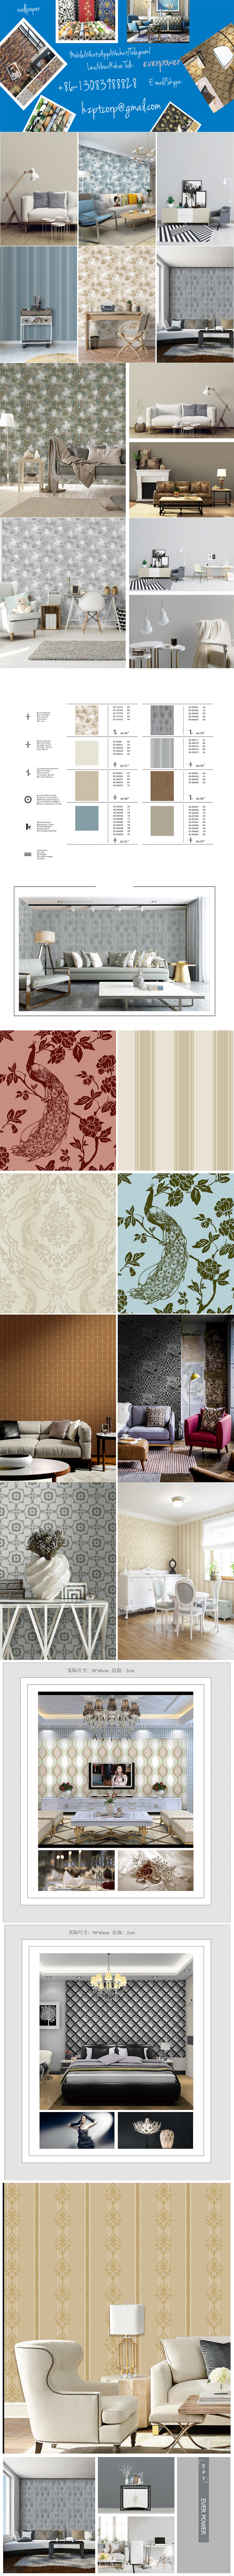 PVC  in Melbourne Australia  Wallpaper with Elegant Classic Damask Pattern